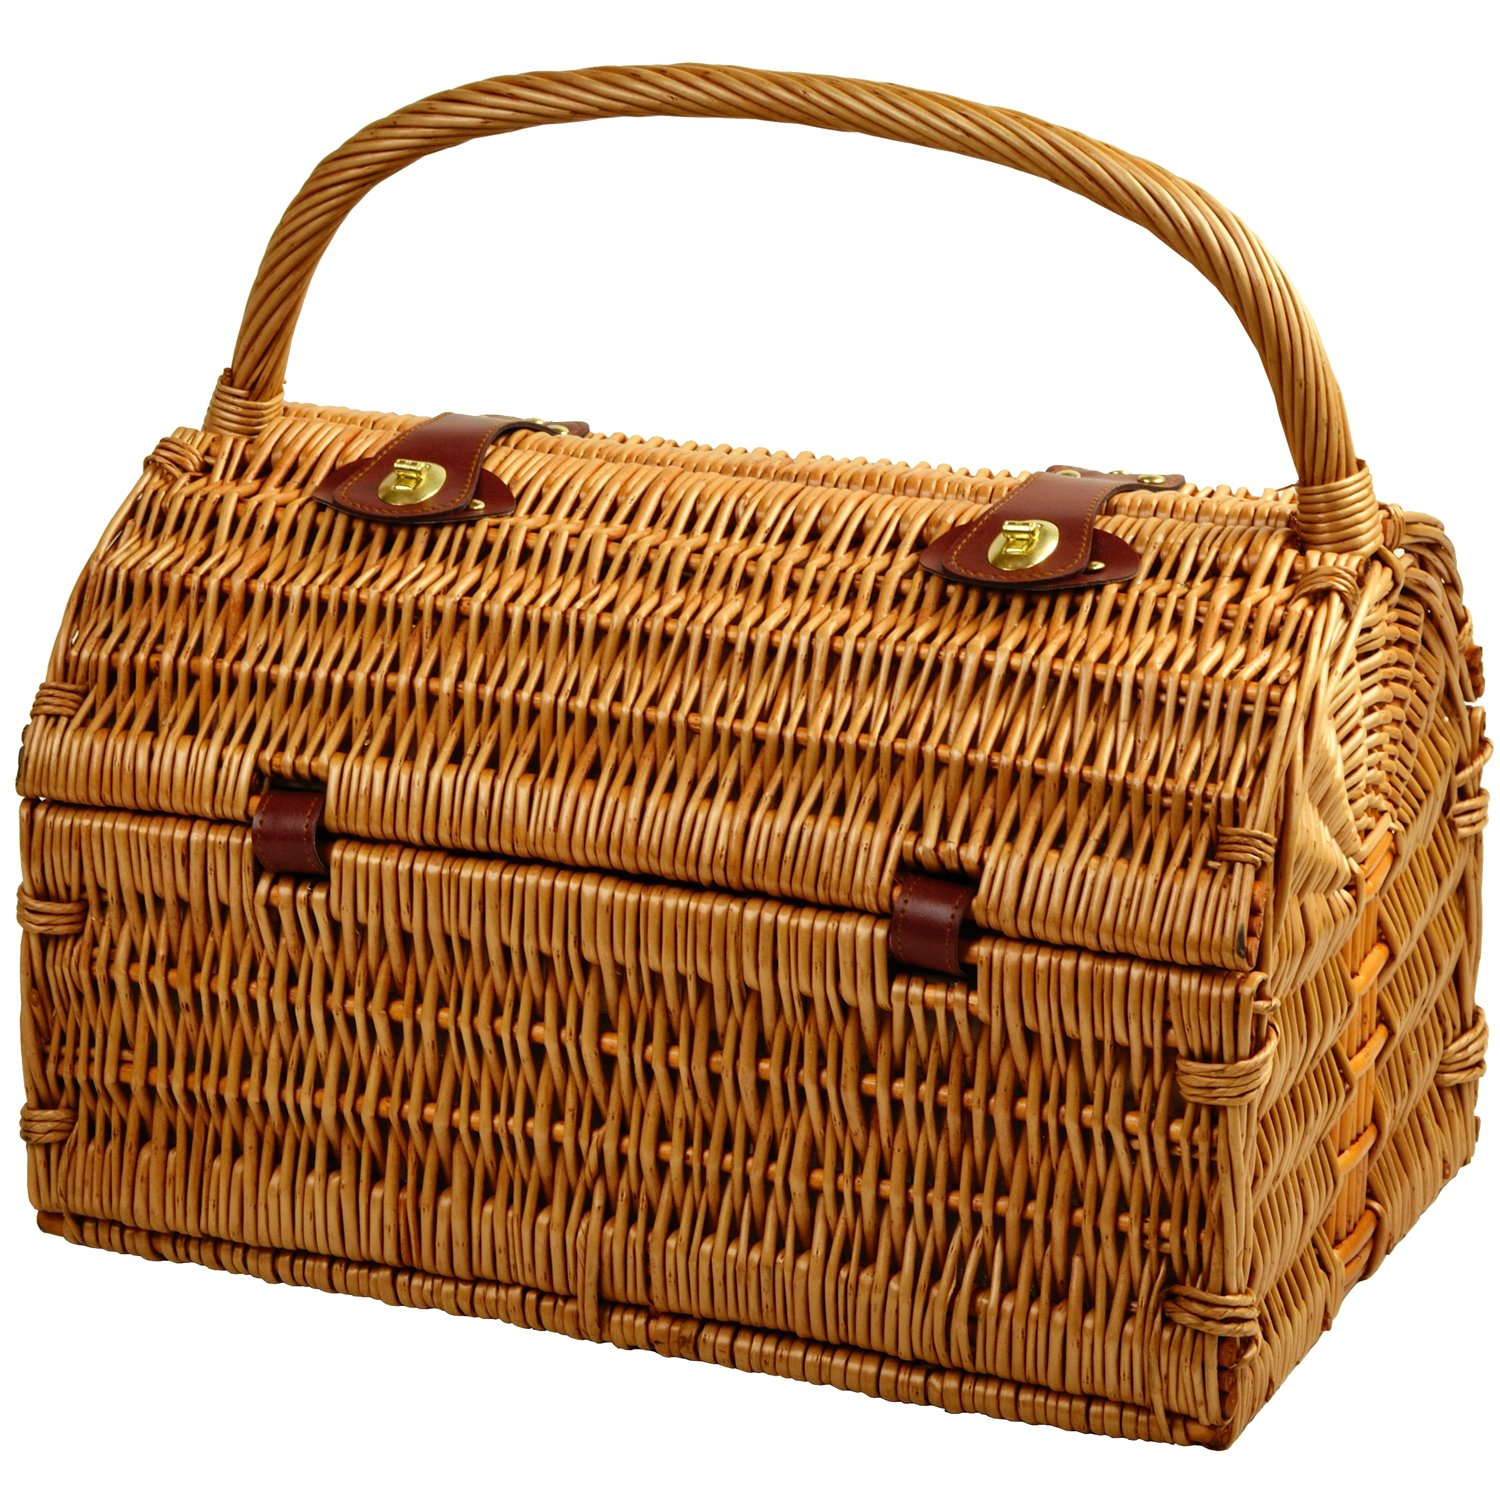 Picnic at Ascot Sussex Willow Picnic Basket with Service for 2, with Coffee Set and Blanket – London Plaid